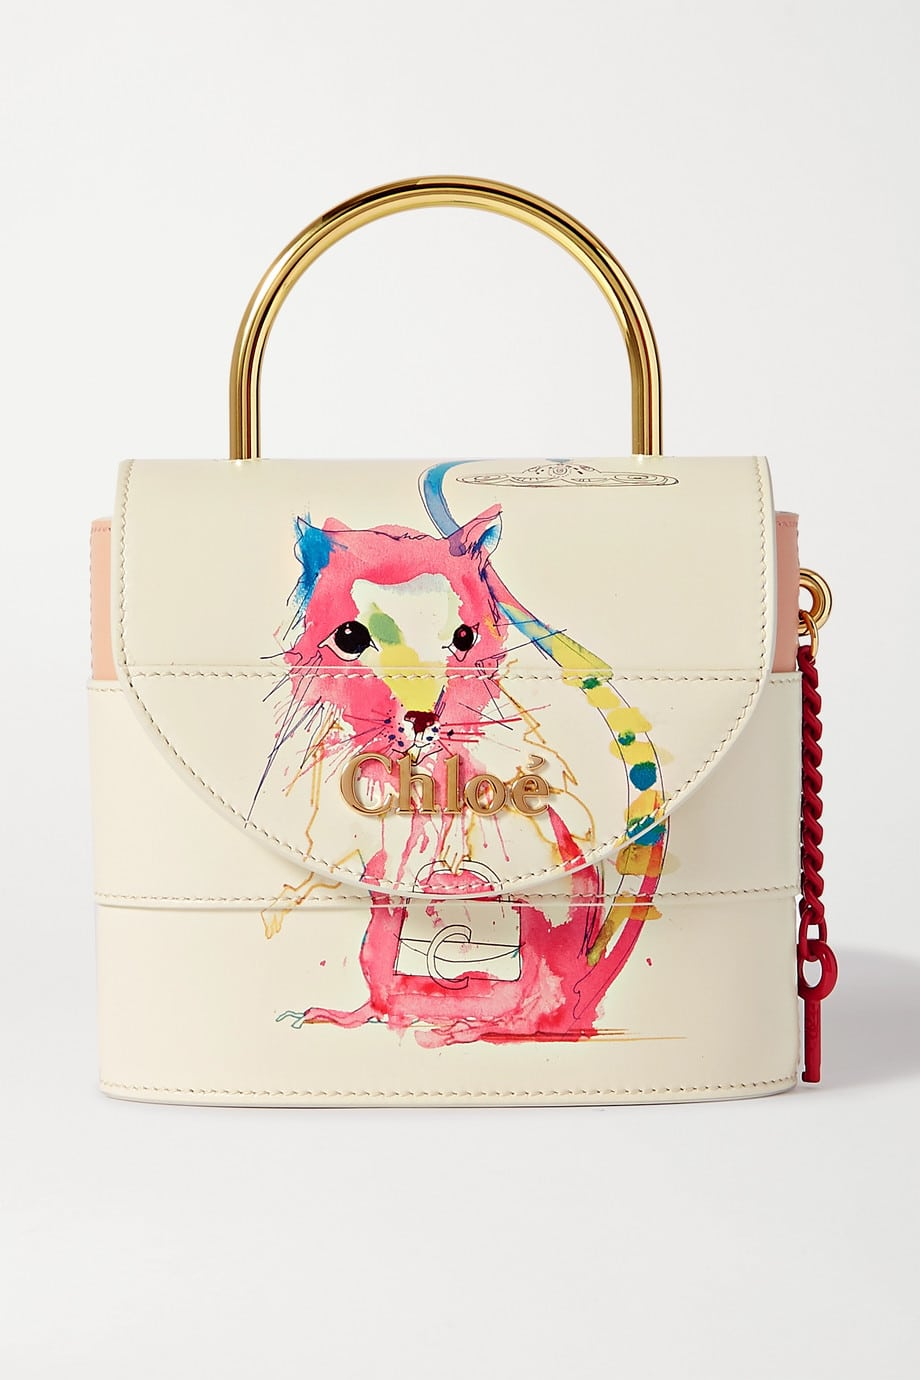 Chloe Small Aby Lock handbag